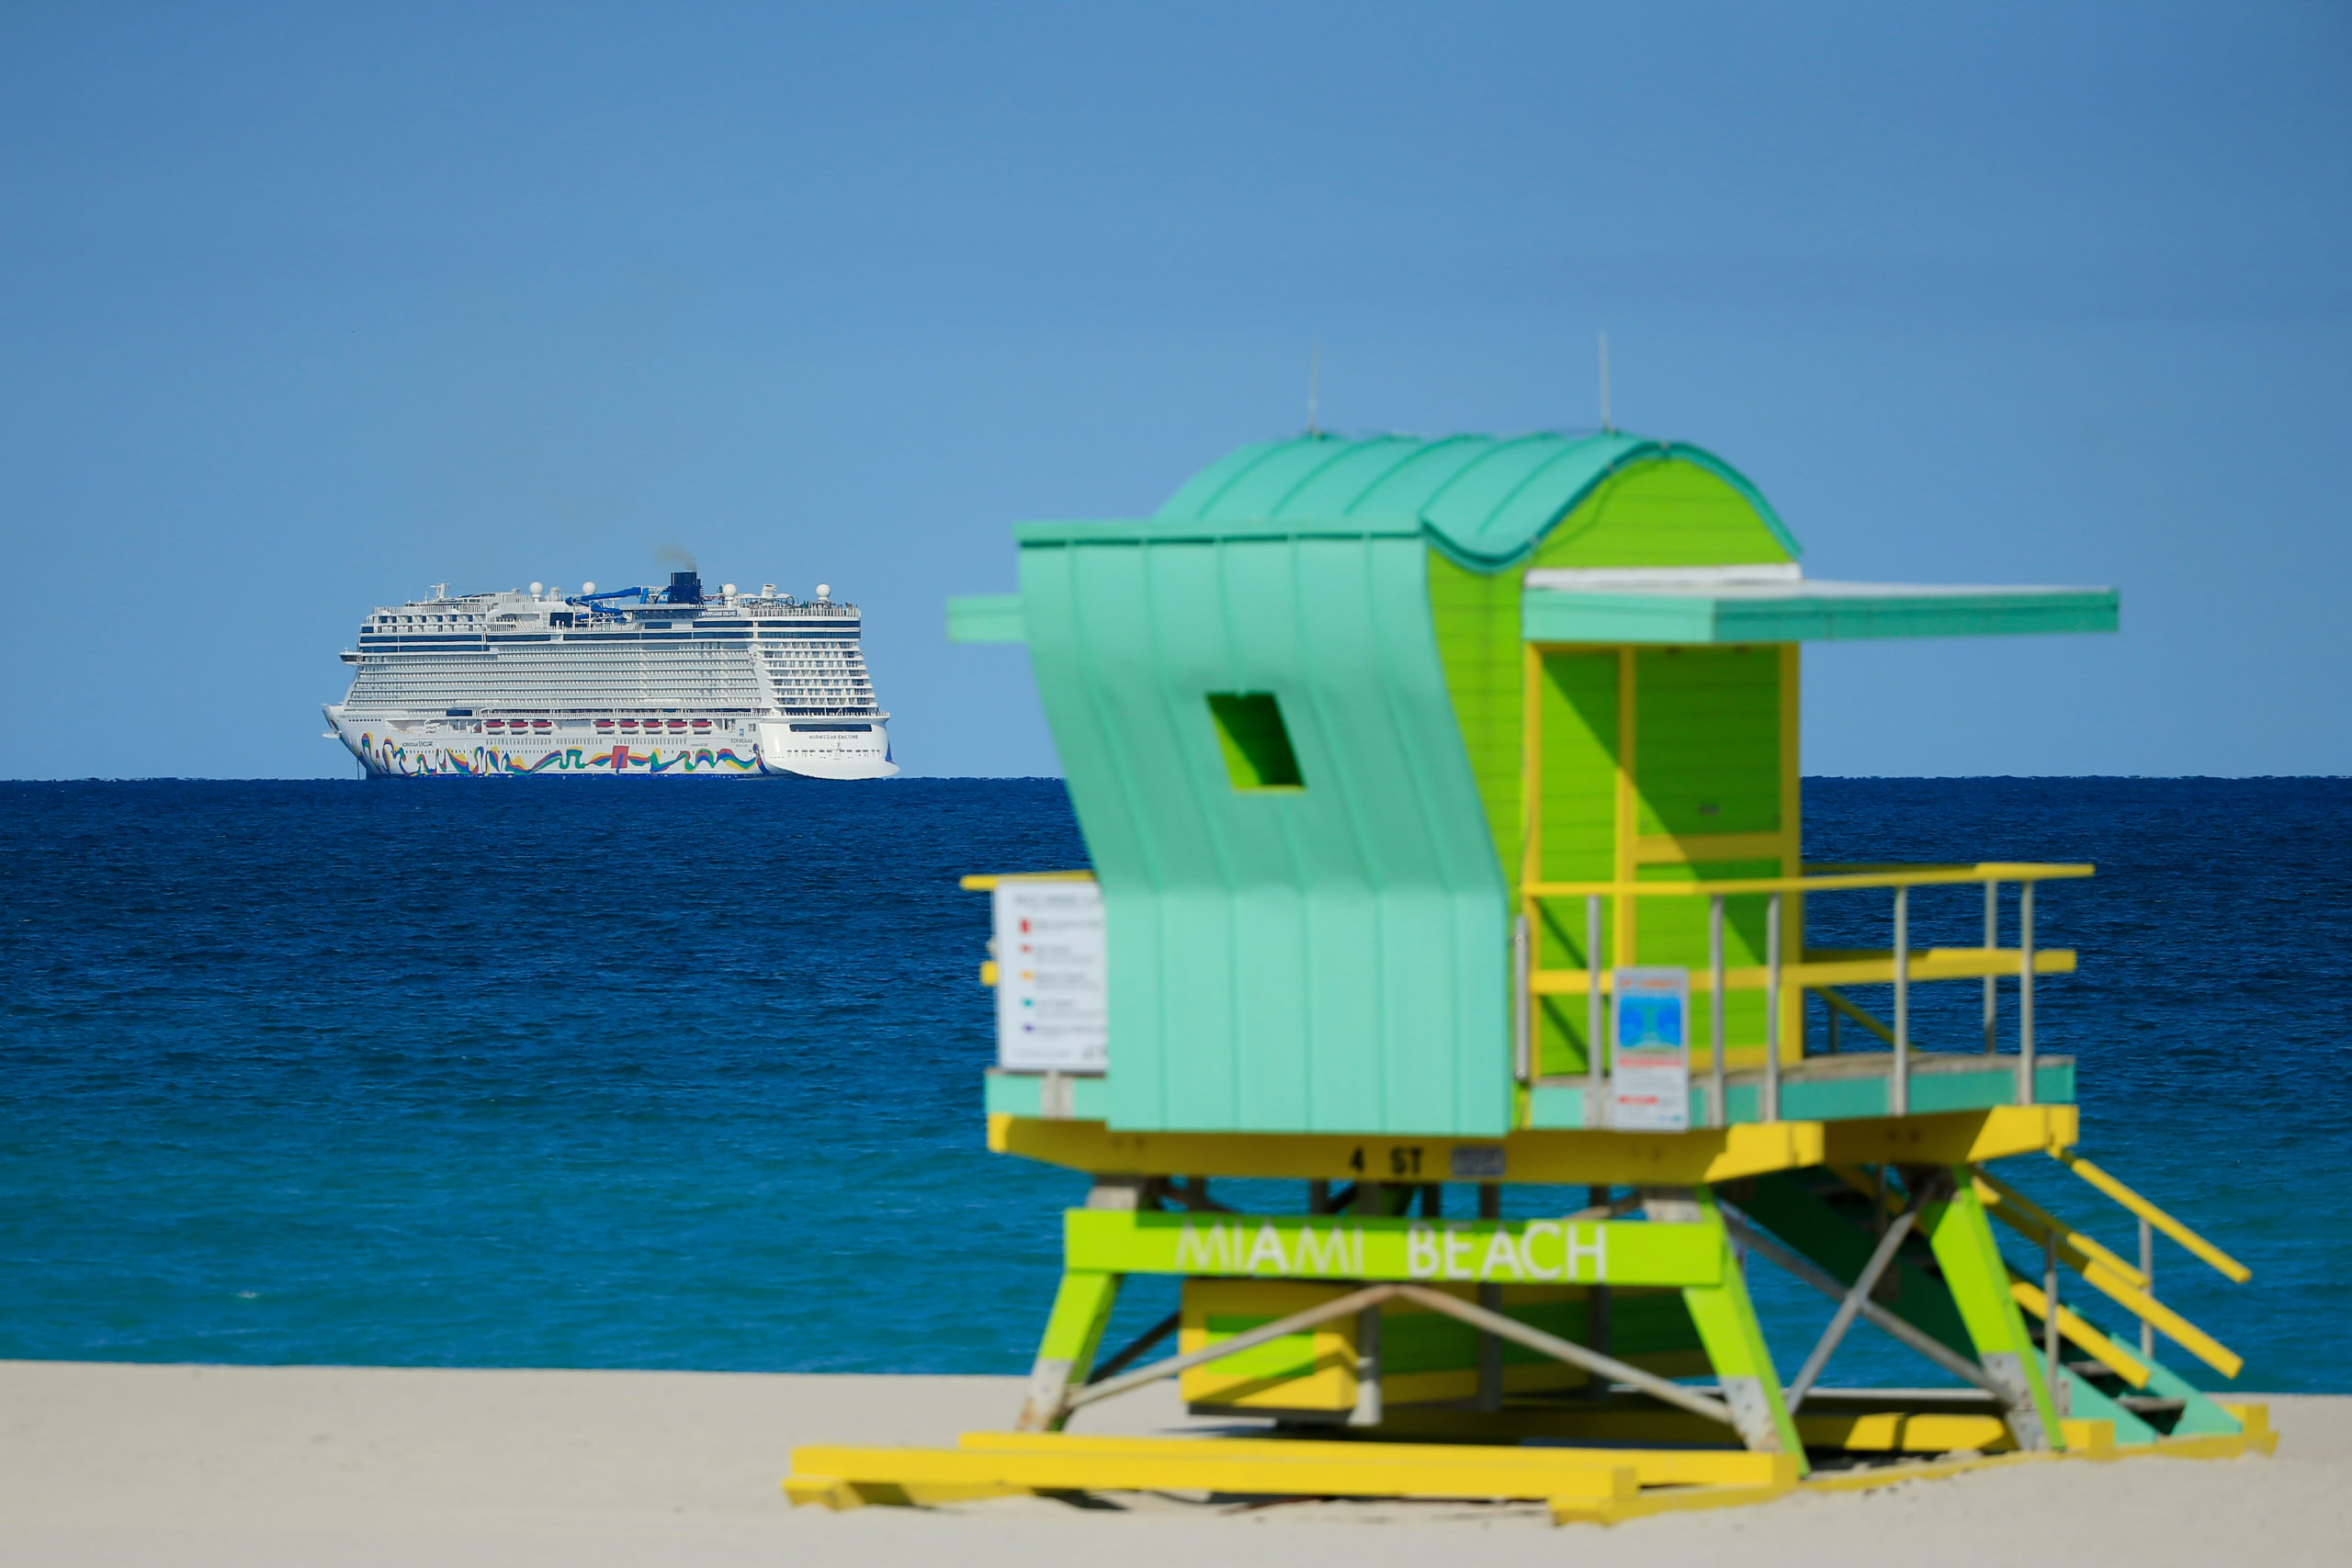 The Norwegian Encore cruise ship pictured last year in Miami Beach, Florida. (Cliff Hawkins/Getty Images)